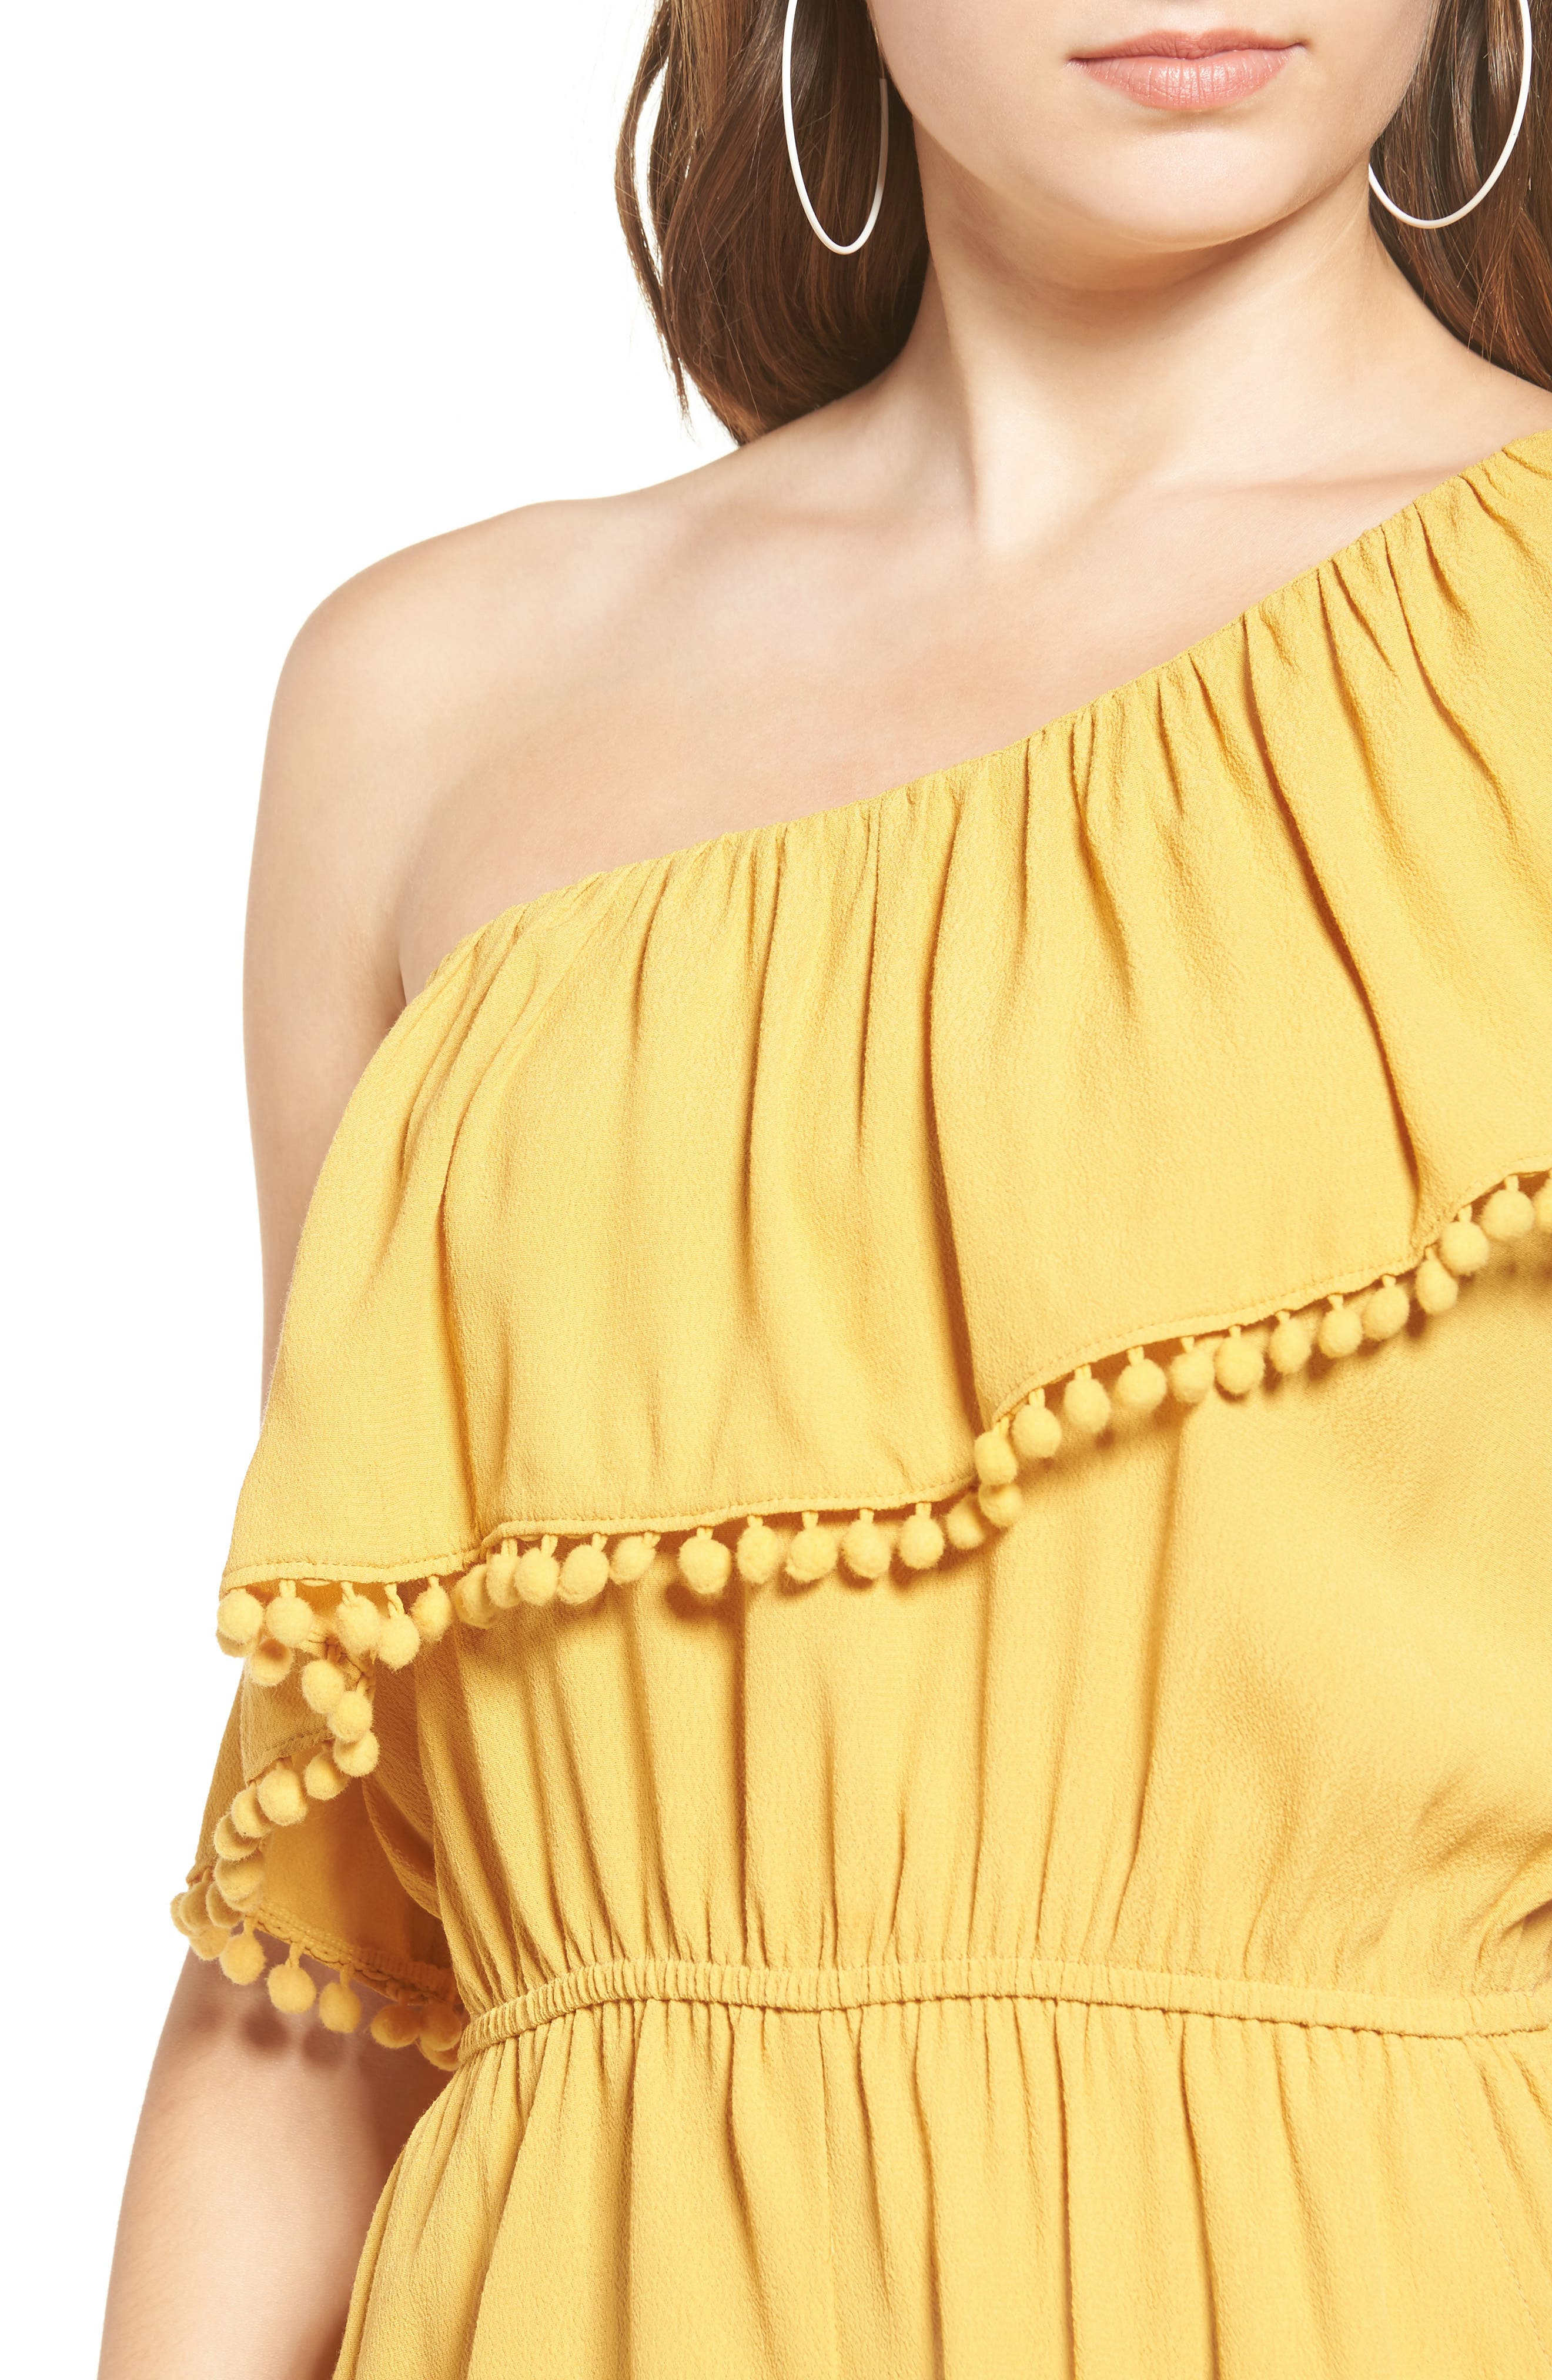 TEN SIXTY SHERMAN, One-Shoulder Ruffle Romper, Alternate thumbnail 4, color, 701